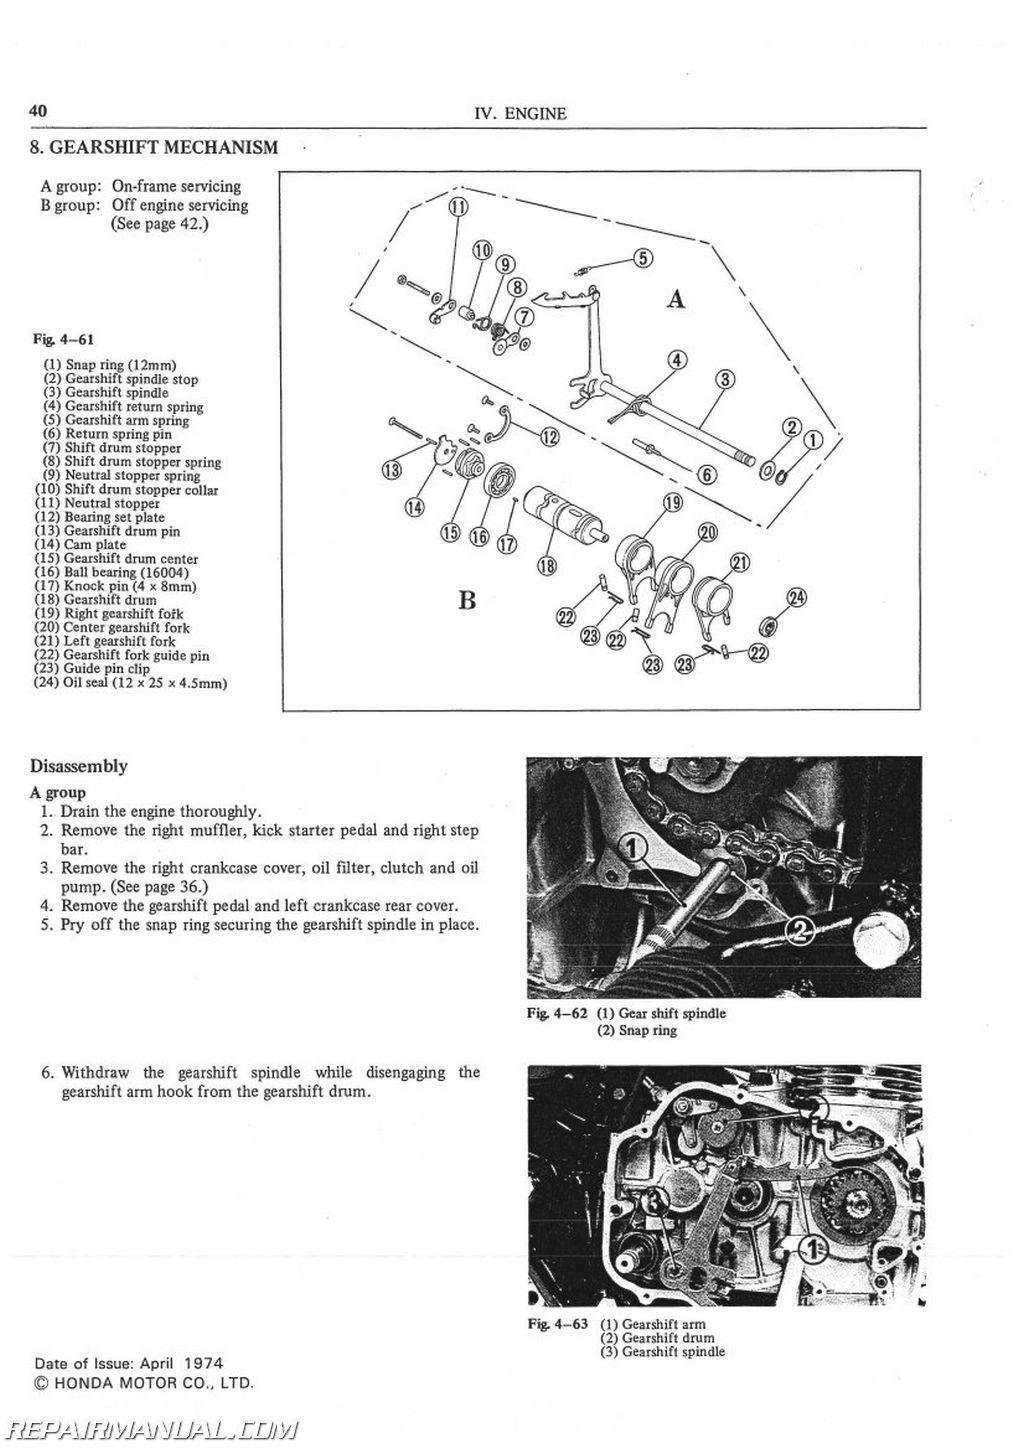 1975 Honda cb500t service manual